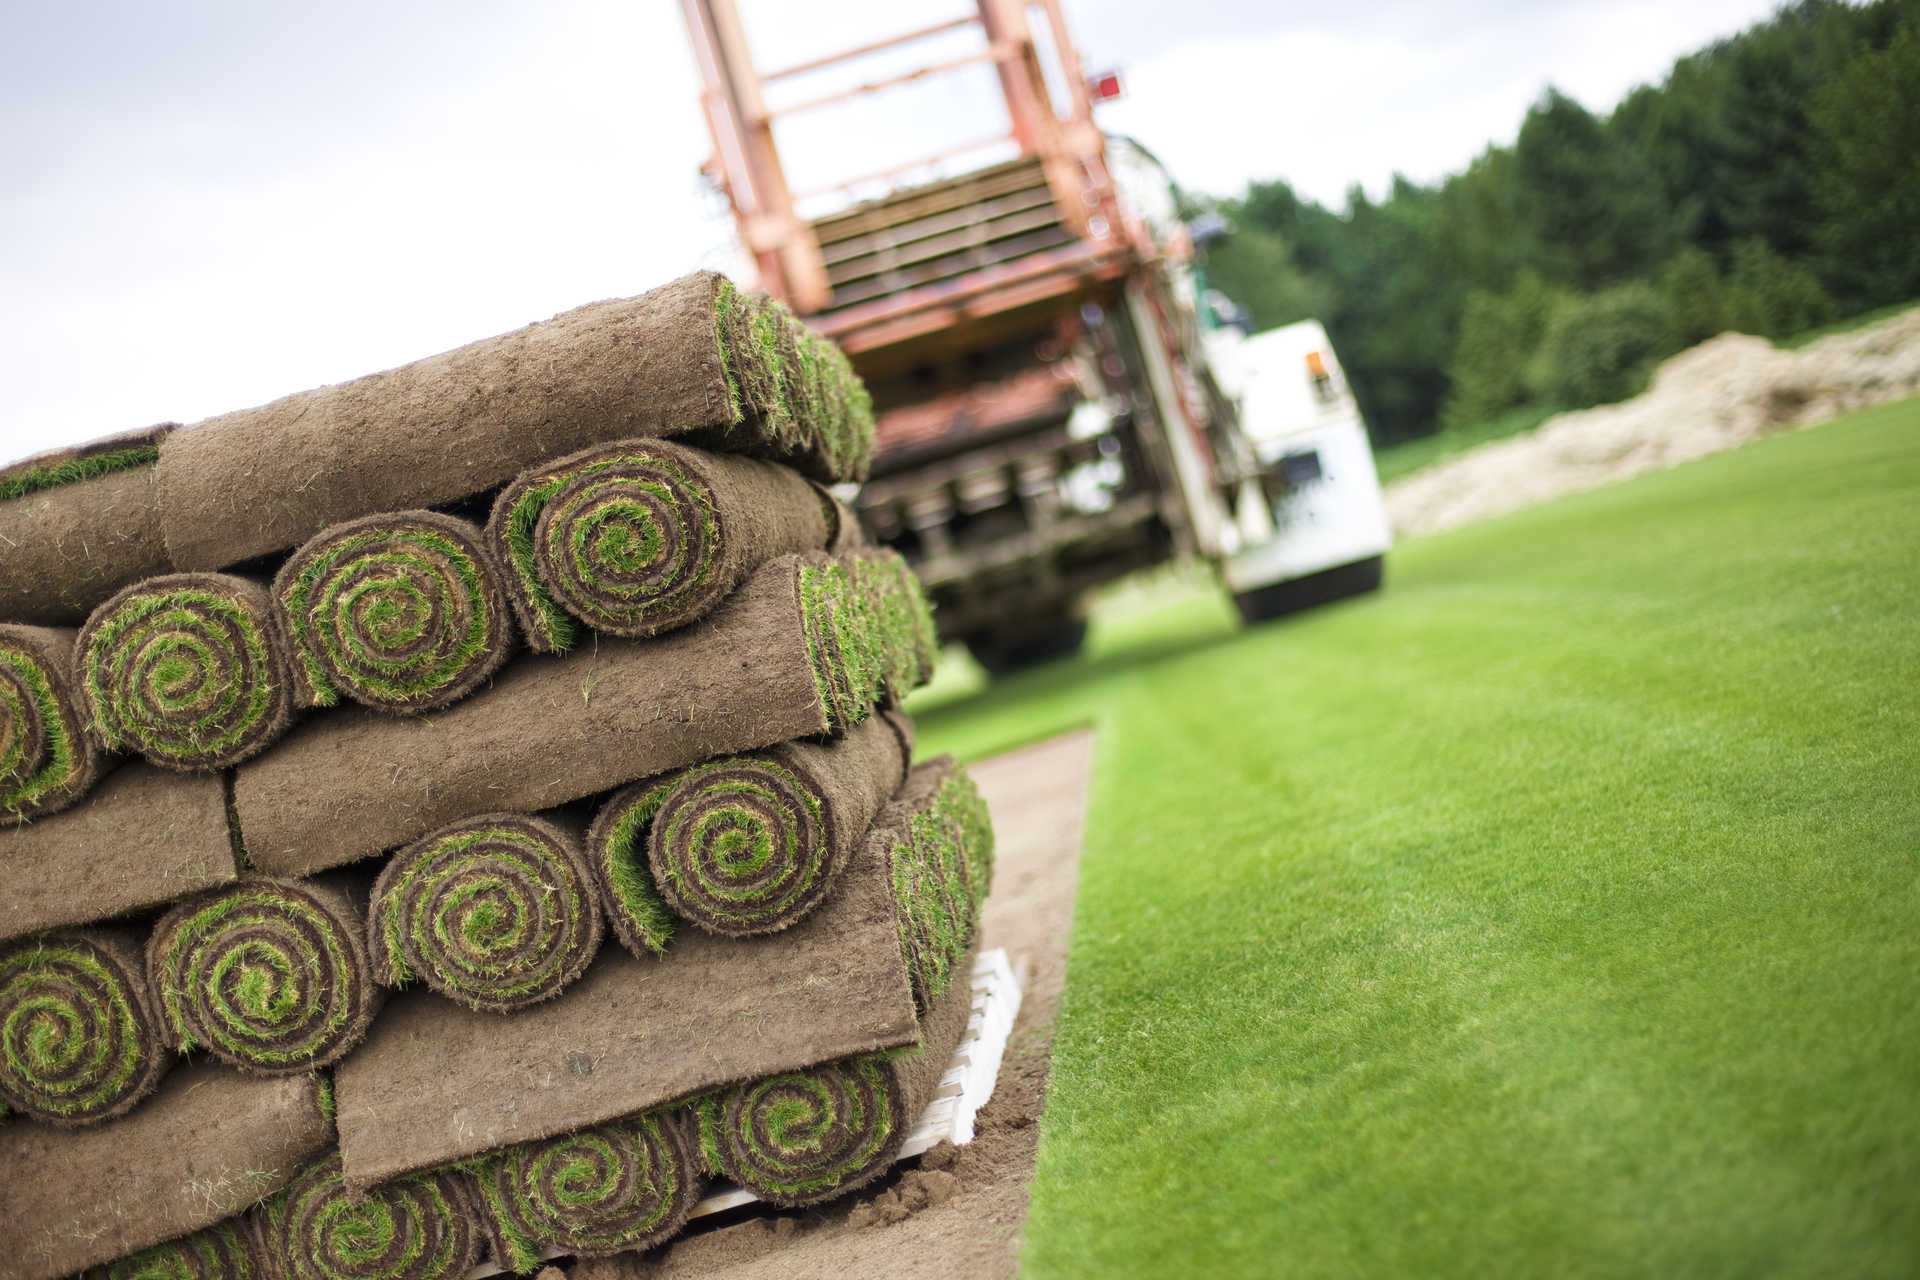 Why Choose Our Lawn Turf?